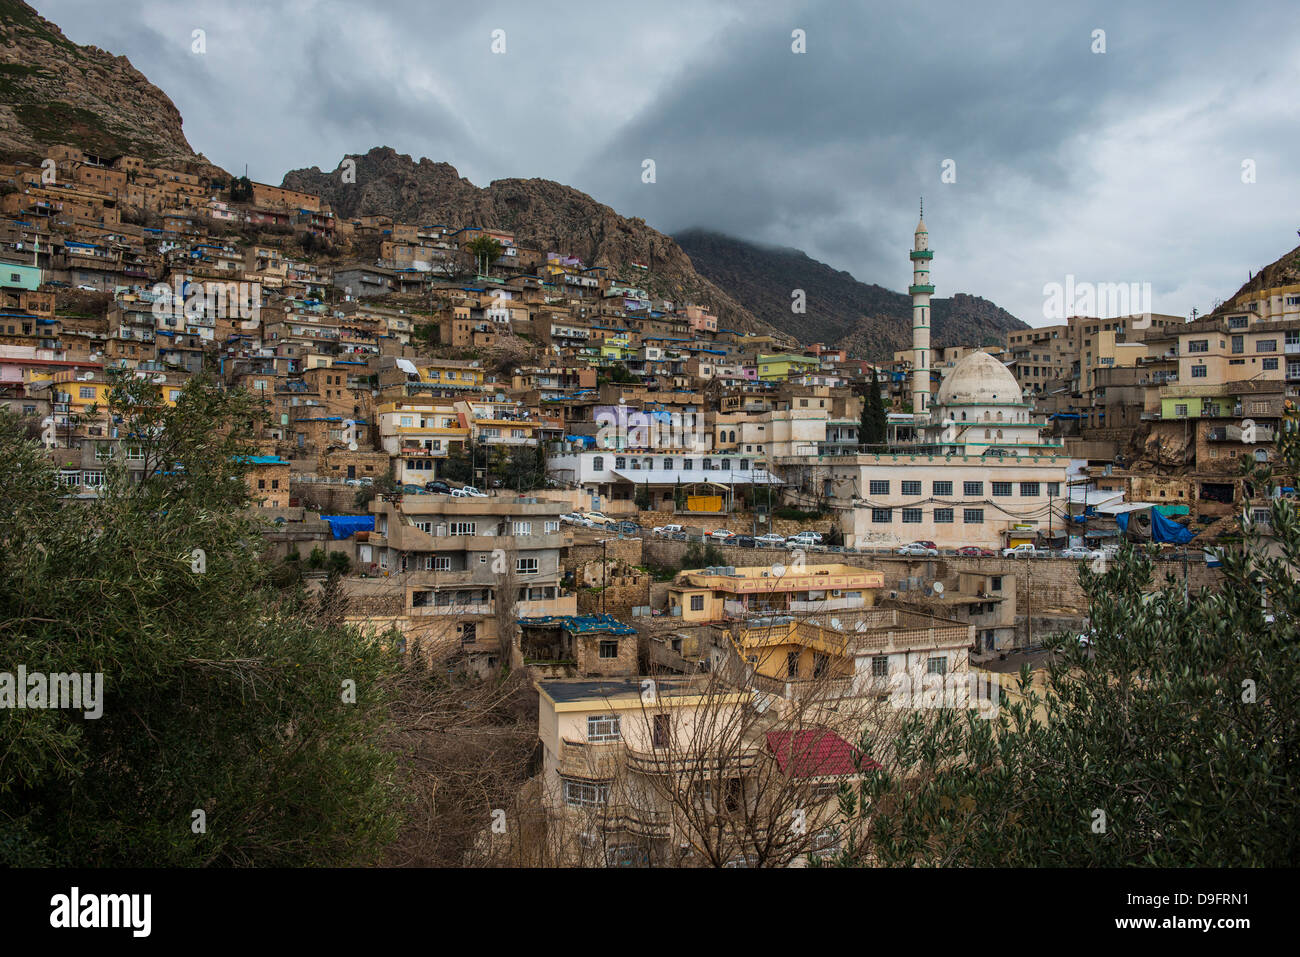 Ancient town of Akre, Iraq Kurdistan, Iraq, Middle East - Stock Image